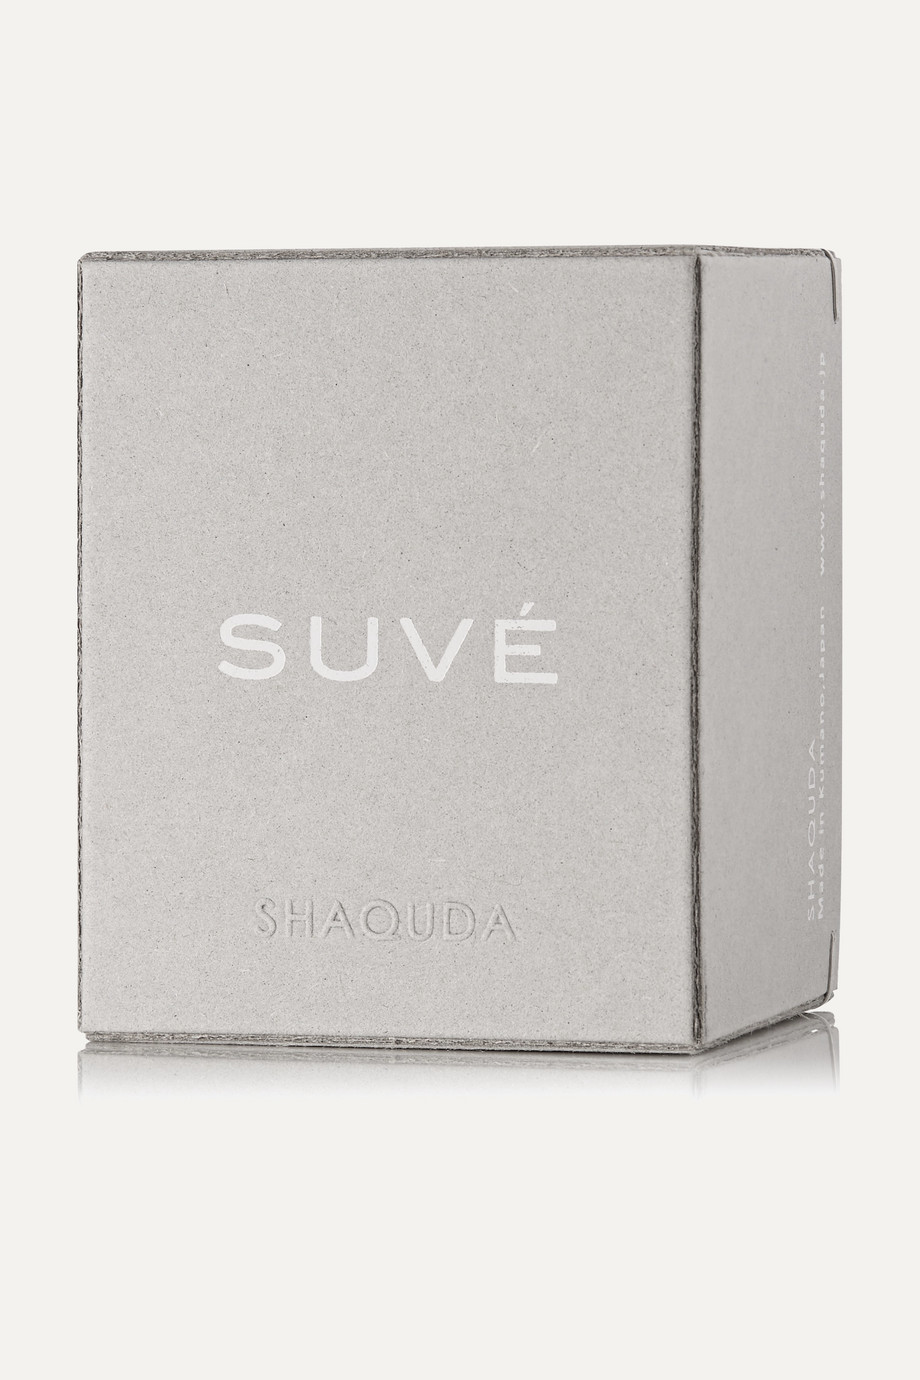 SHAQUDA Suvé Body Brush Short - Soft